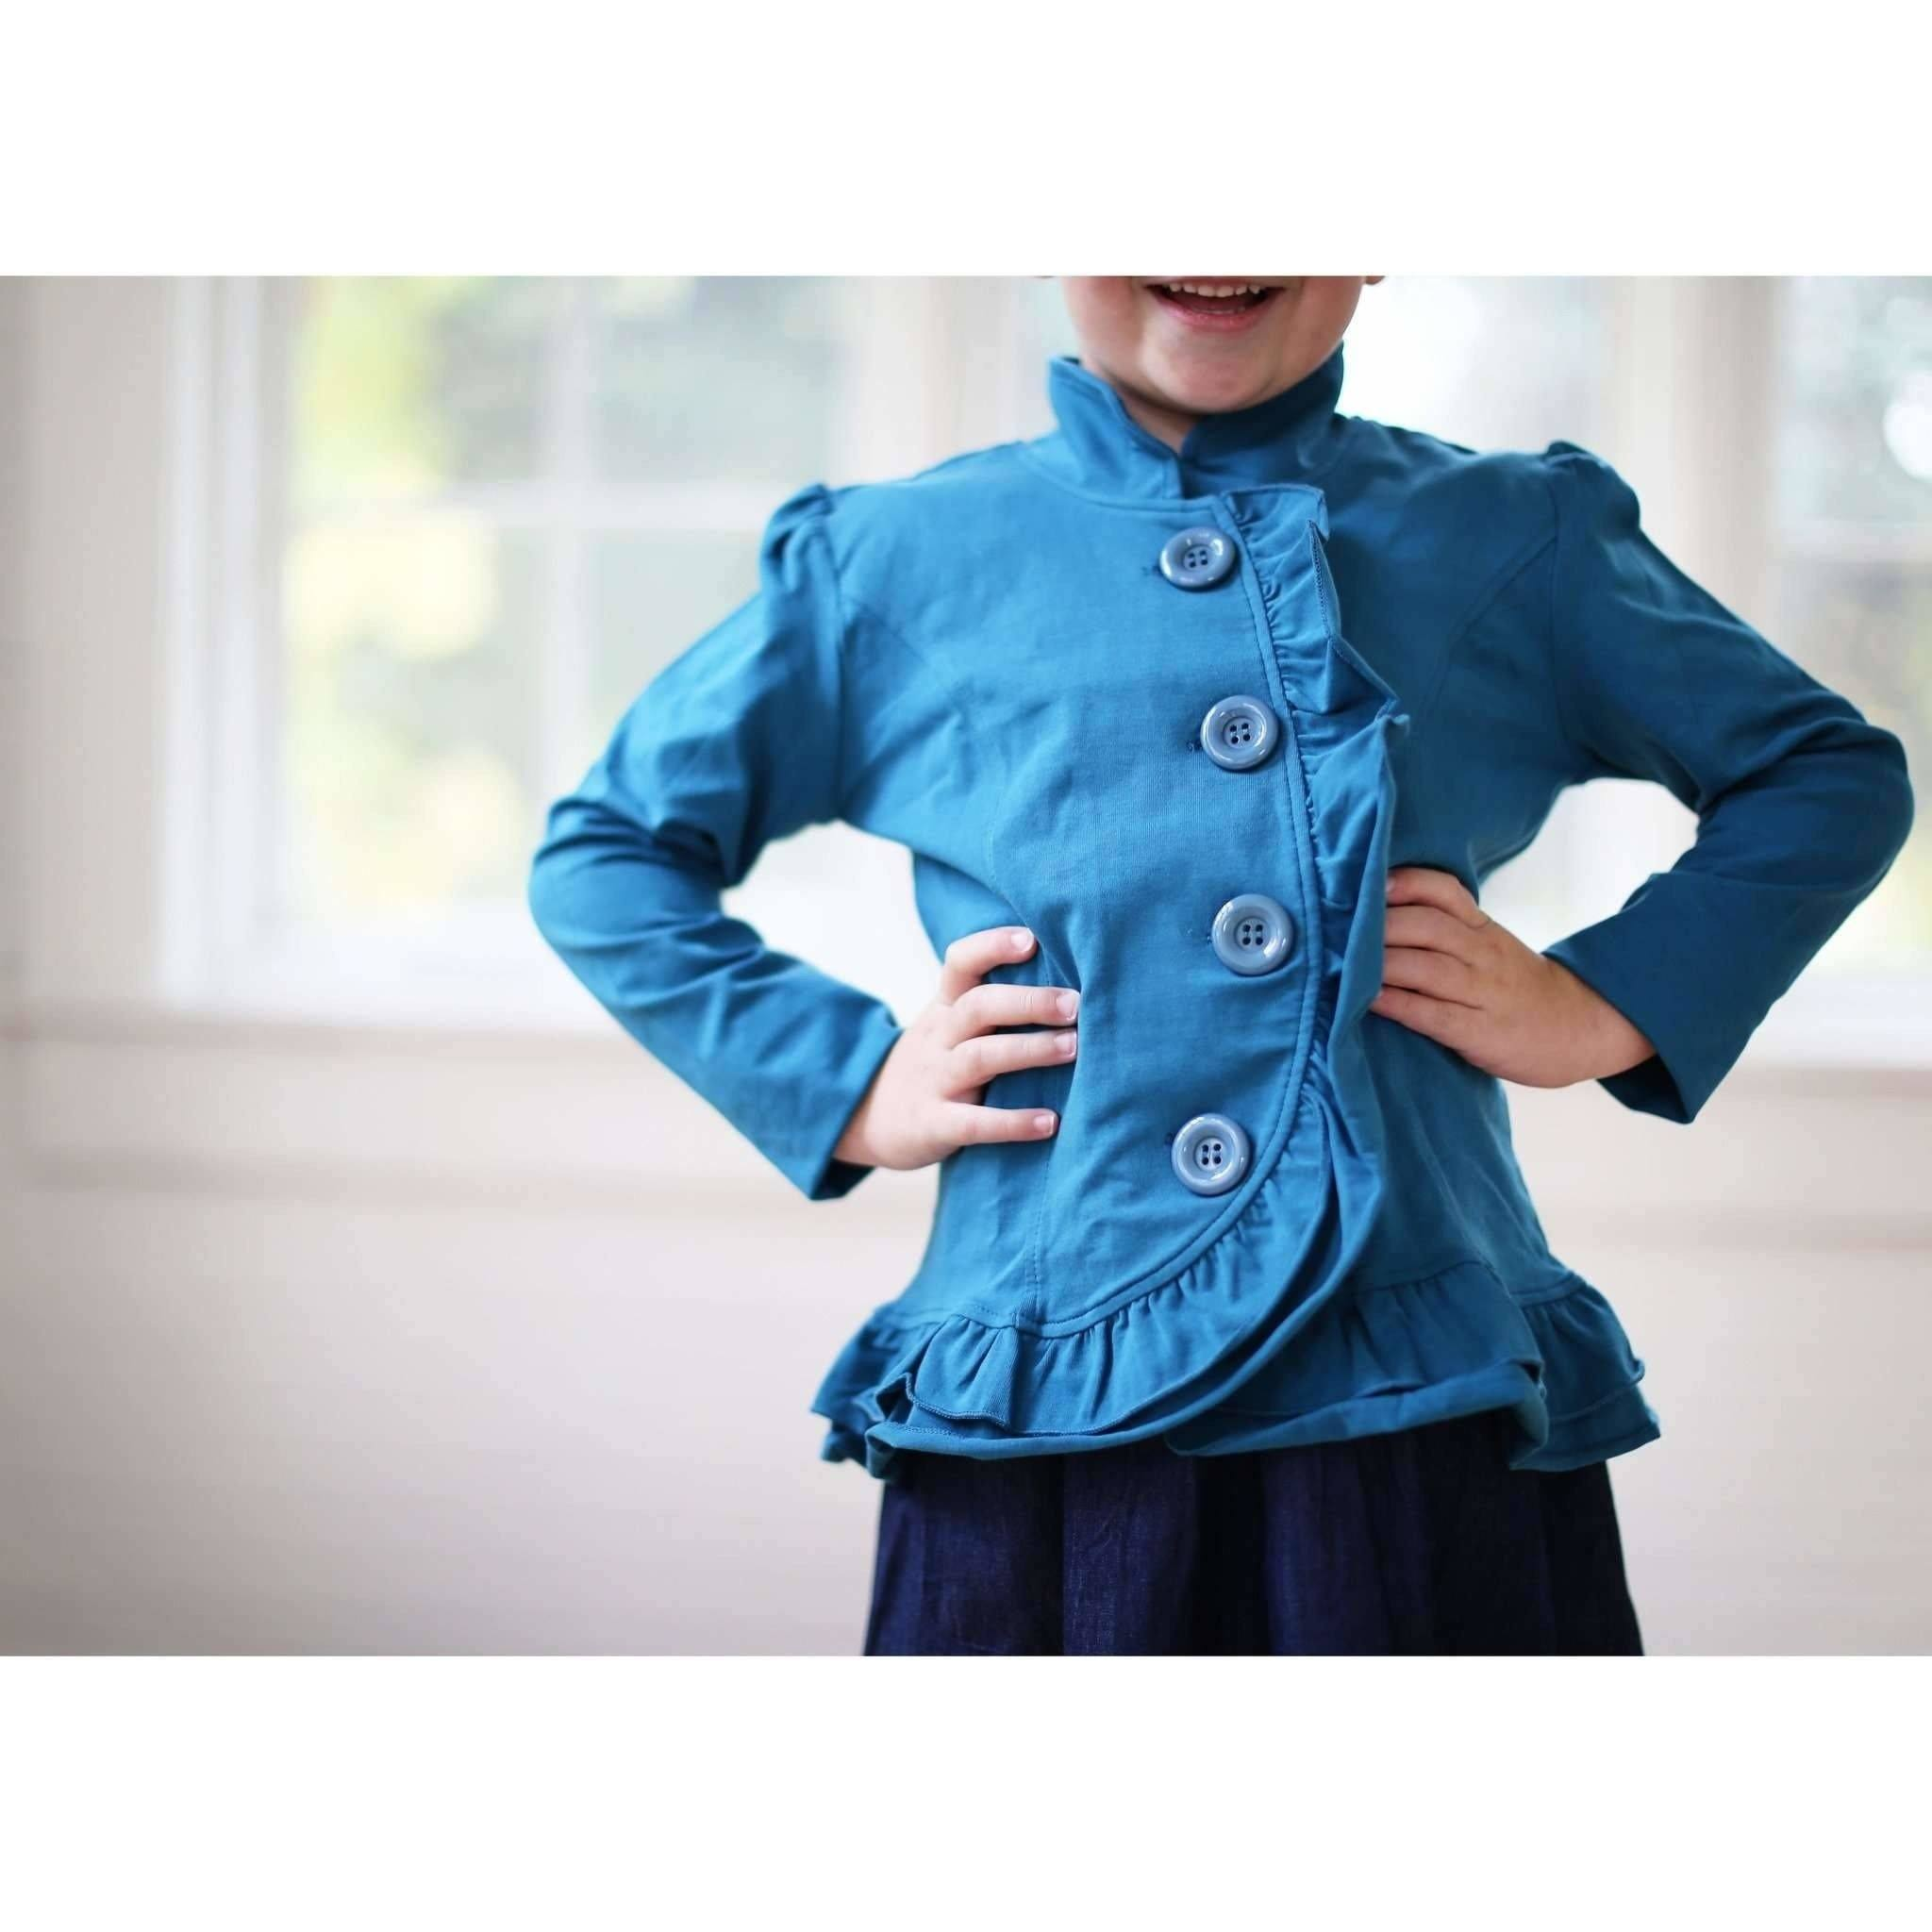 Adorable Essentials, Big Button Jacket,Tops,Adorable Essentials, LLC